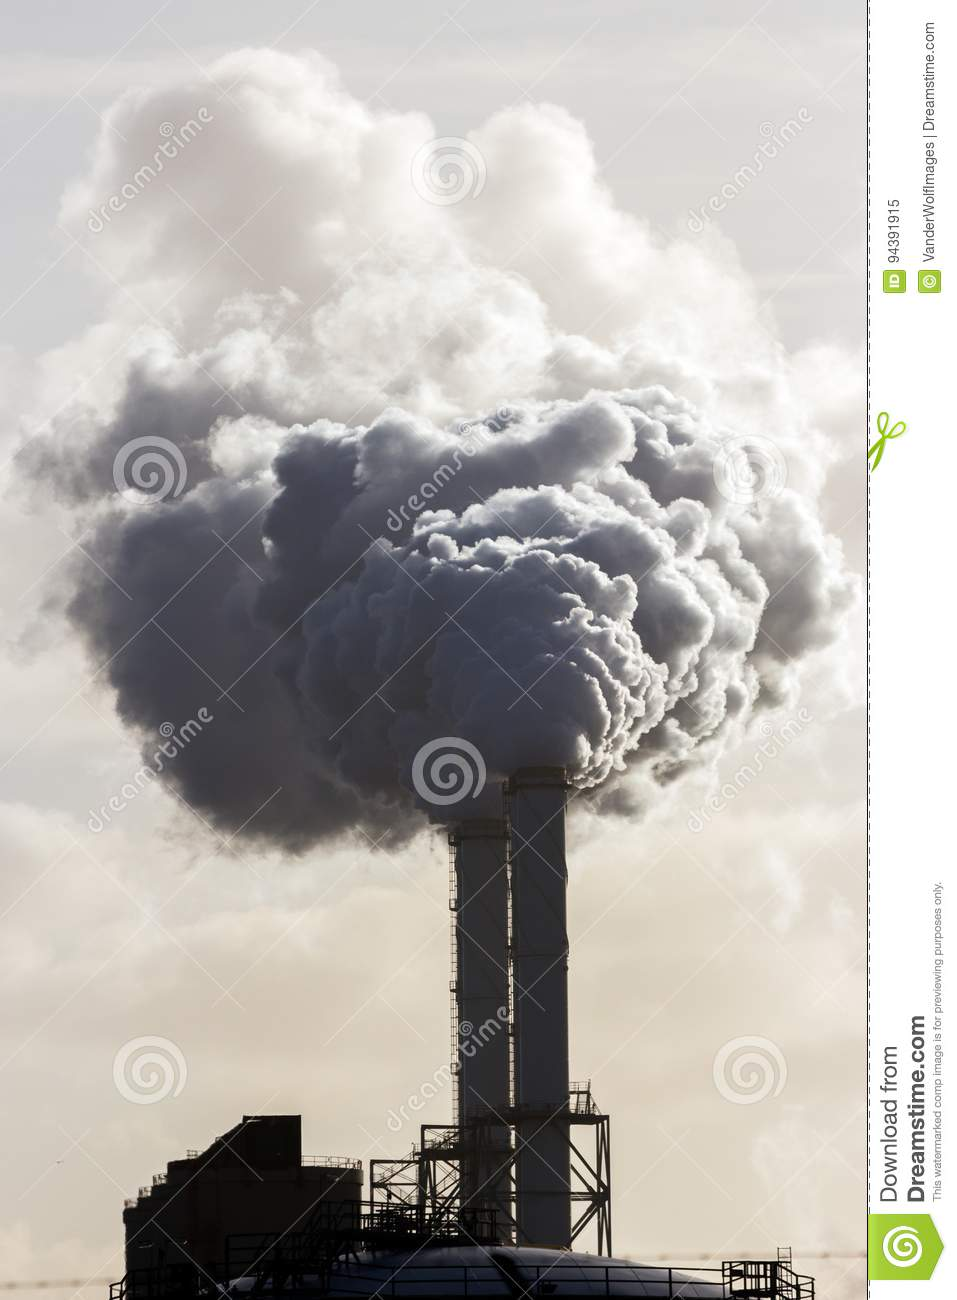 Environmental Pollution Caused By Factory Stock Image - Image of